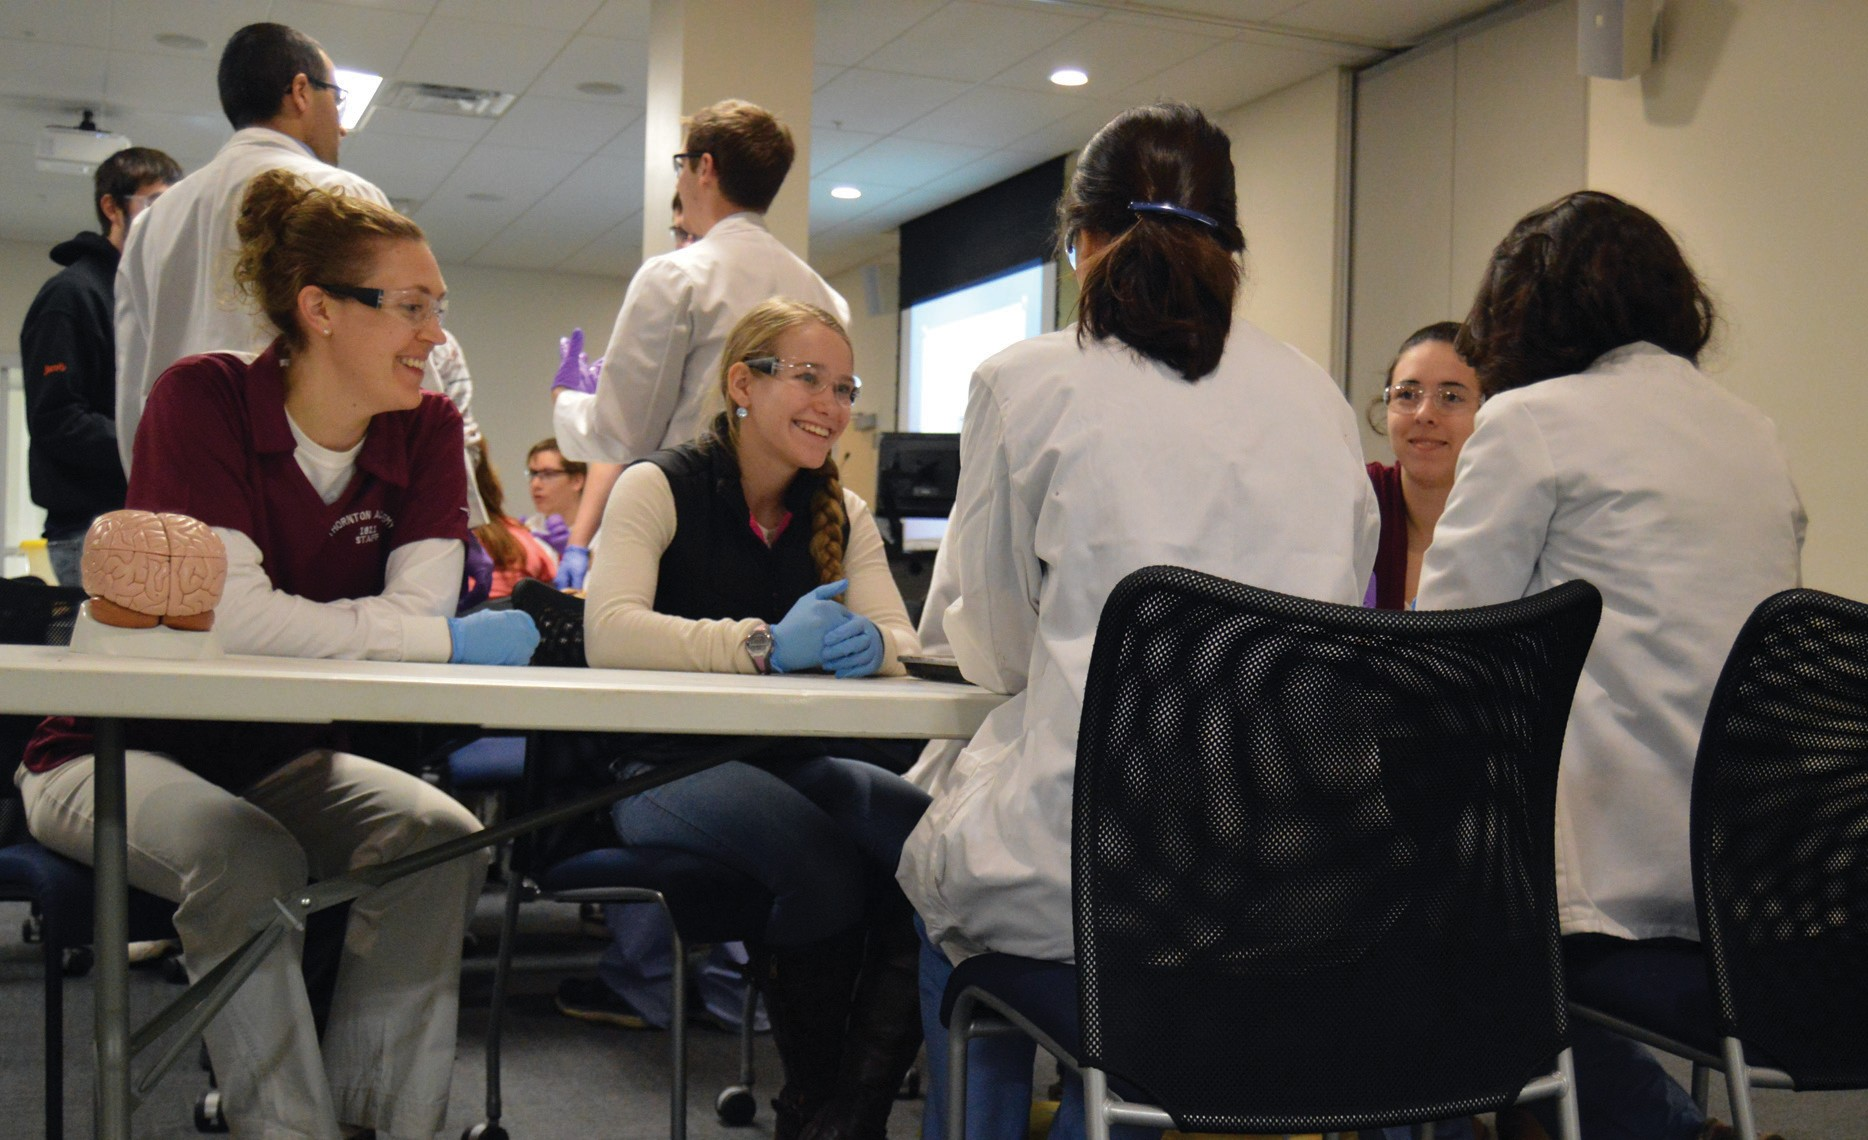 To prepare for the southern Maine Regional Brain Bee Competition, volunteer college undergraduates enrolled in the University of New England's College of Osteopathic Medicine program worked in small groups to prepare high school students for the competition on UNE's Biddeford campus Tuesday..